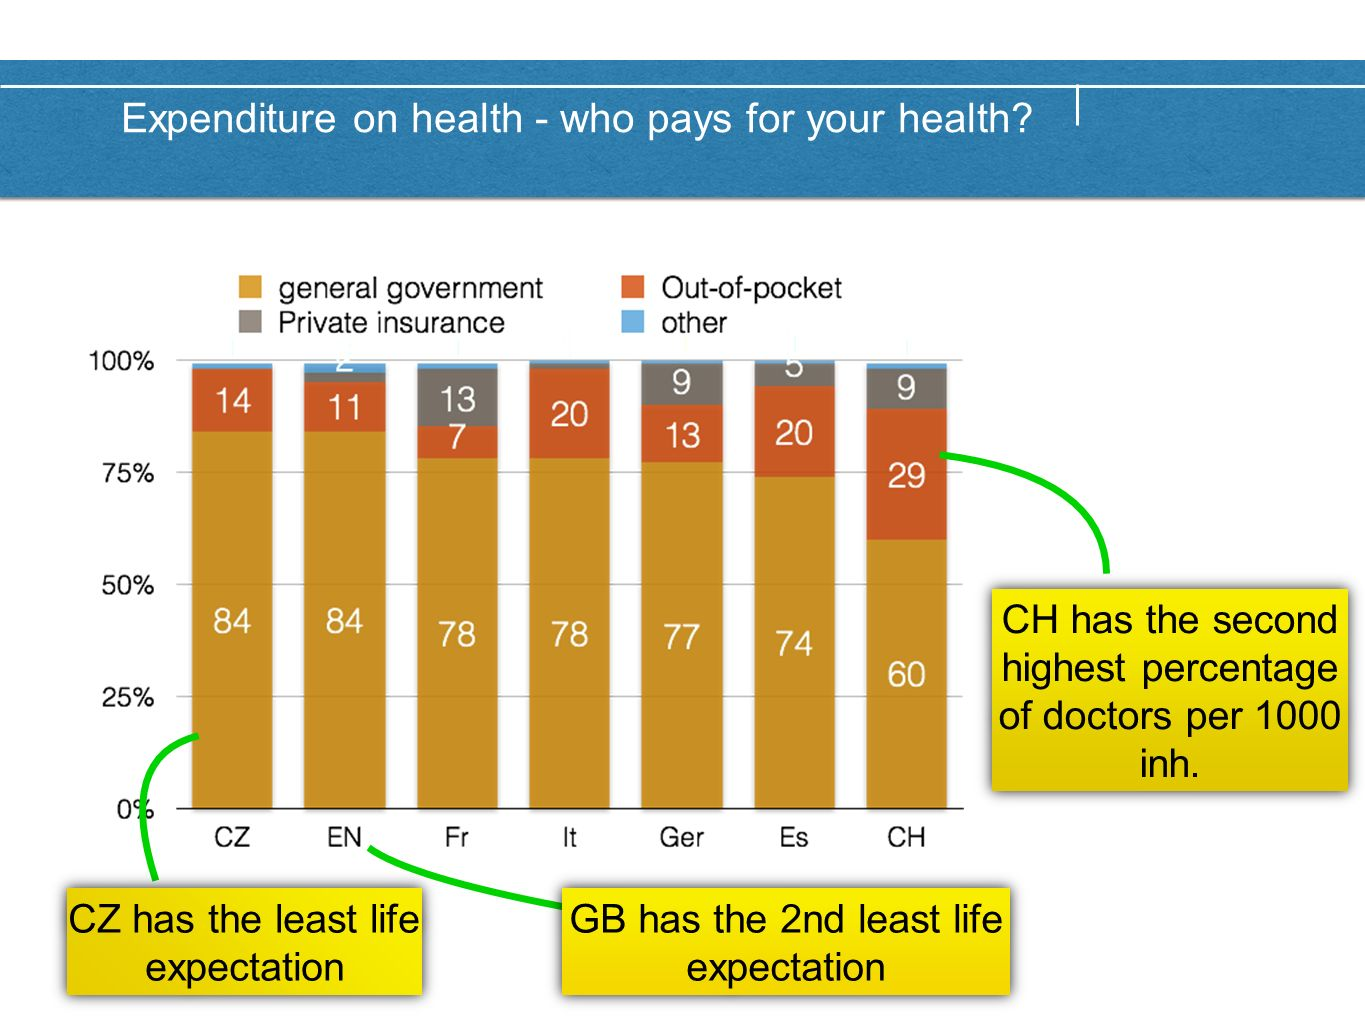 Expenditure on health - who pays for your health.